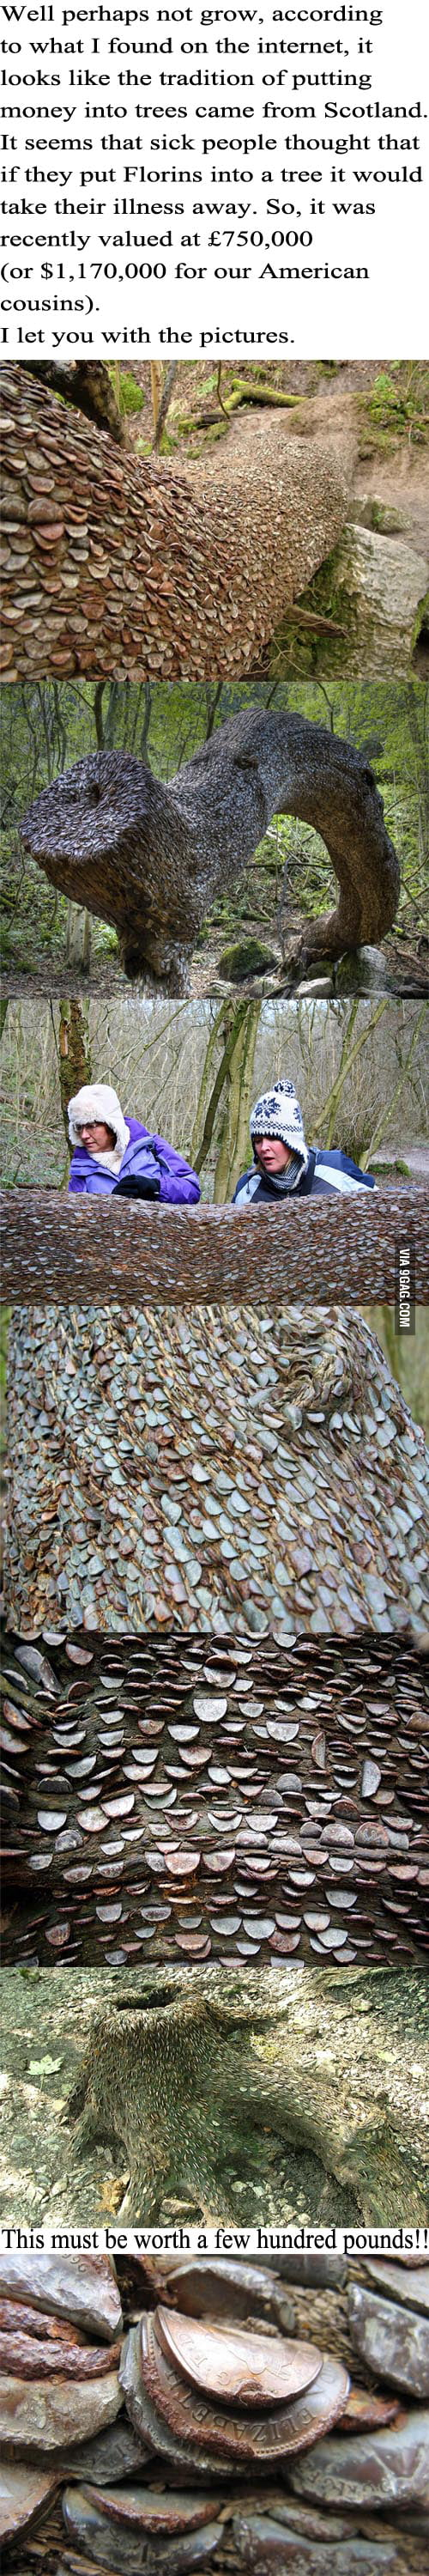 Money grows on trees!! A tree worth $1.17 million